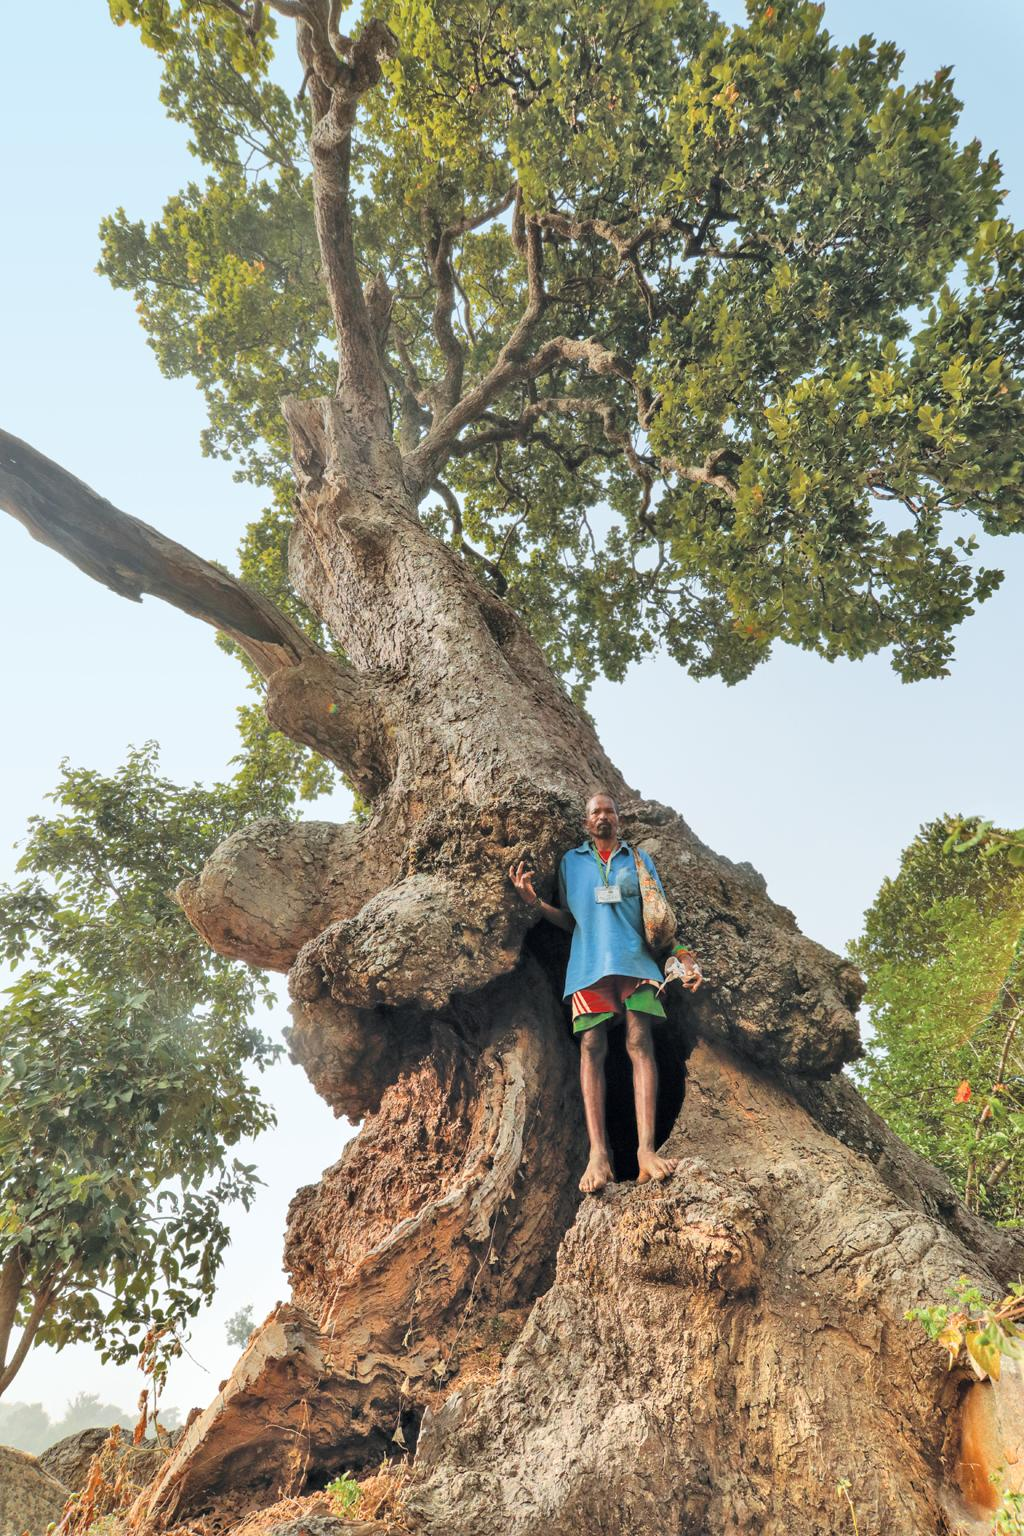 An ancient